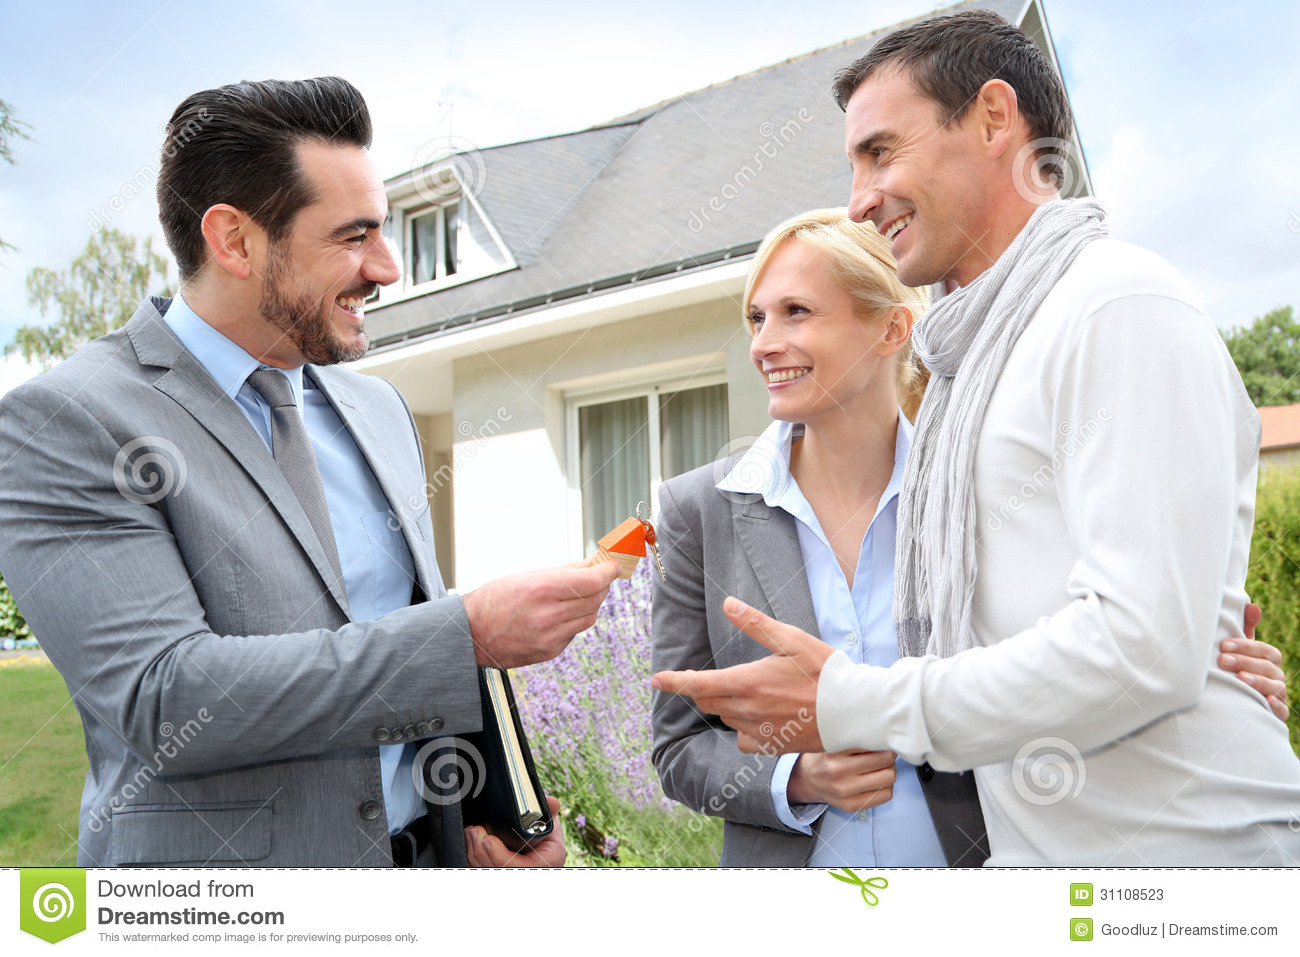 Married real estate agent from el sereno - 2 5